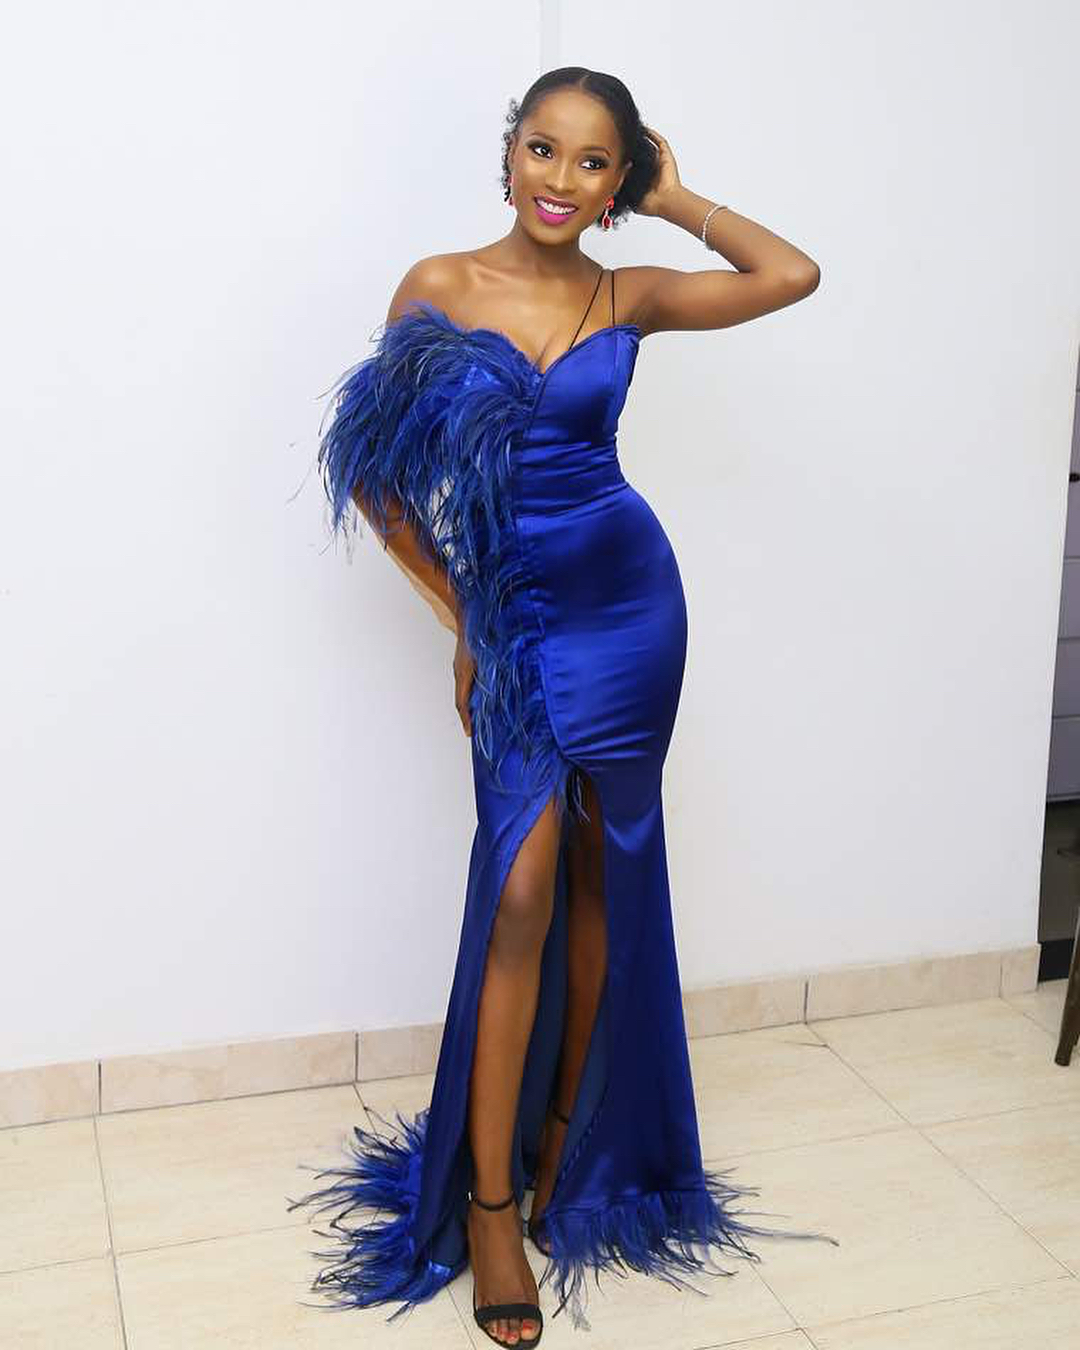 let-peplums-volume-and-intricate-details-adorn-your-next-aso-ebi-look